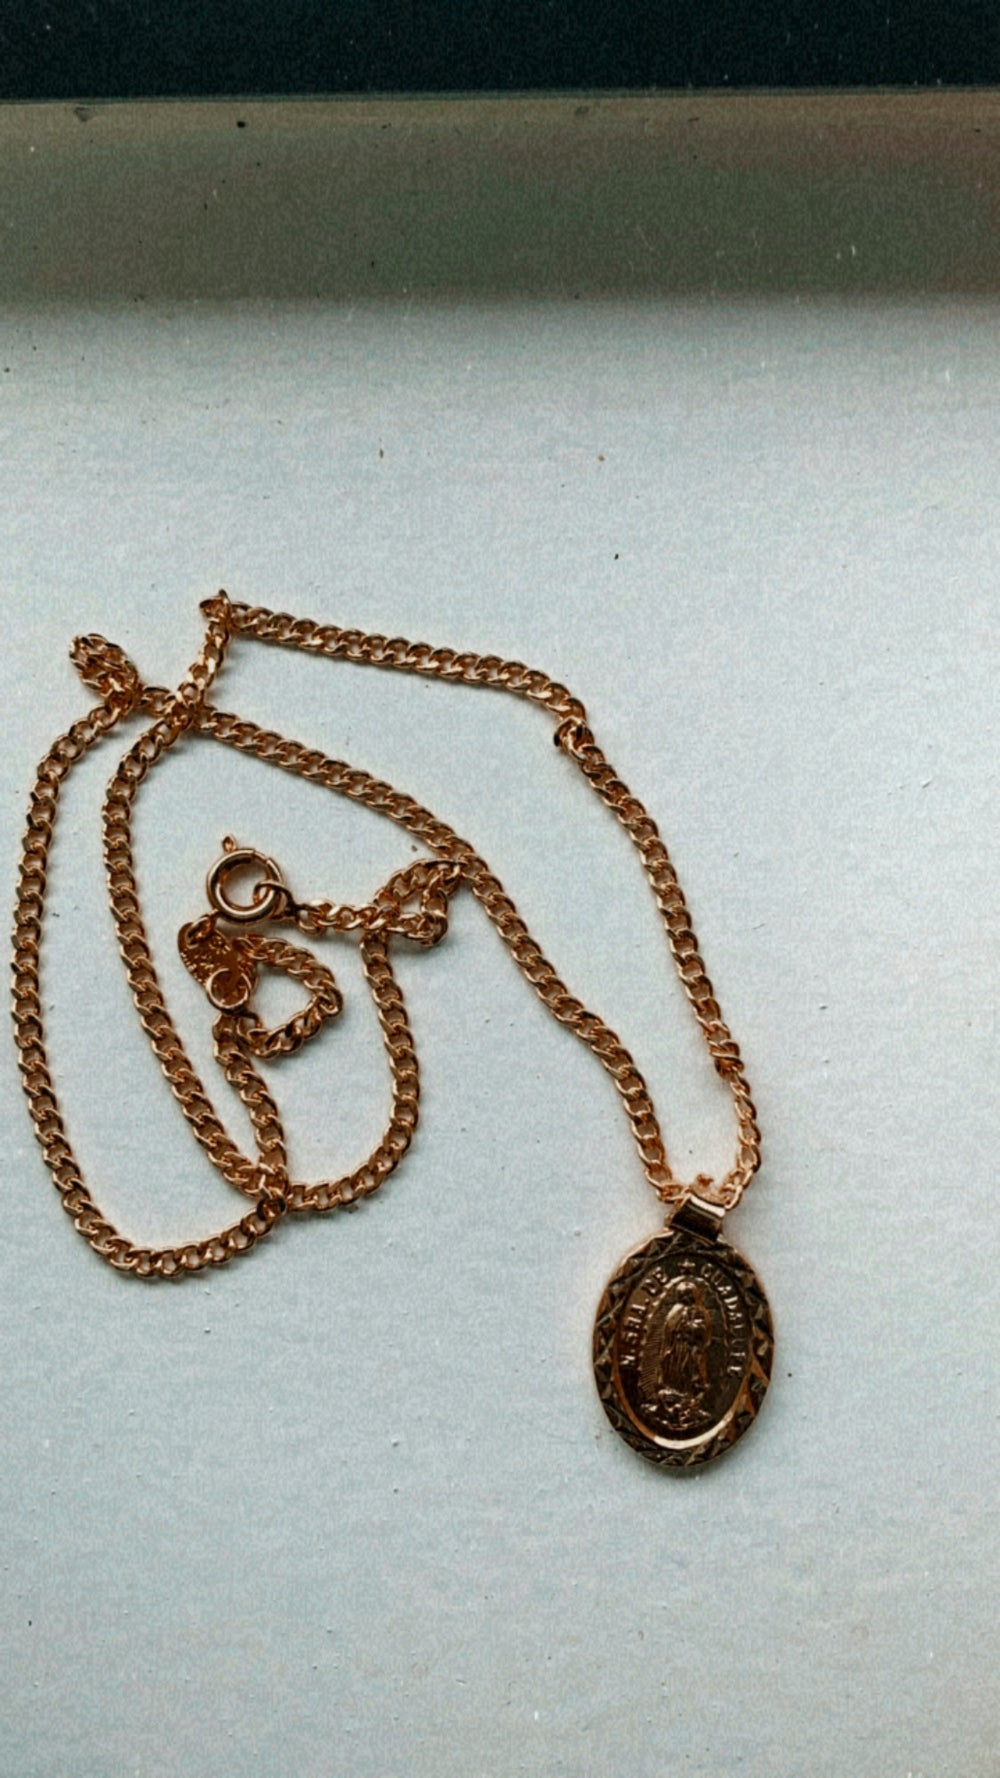 Maria small necklace